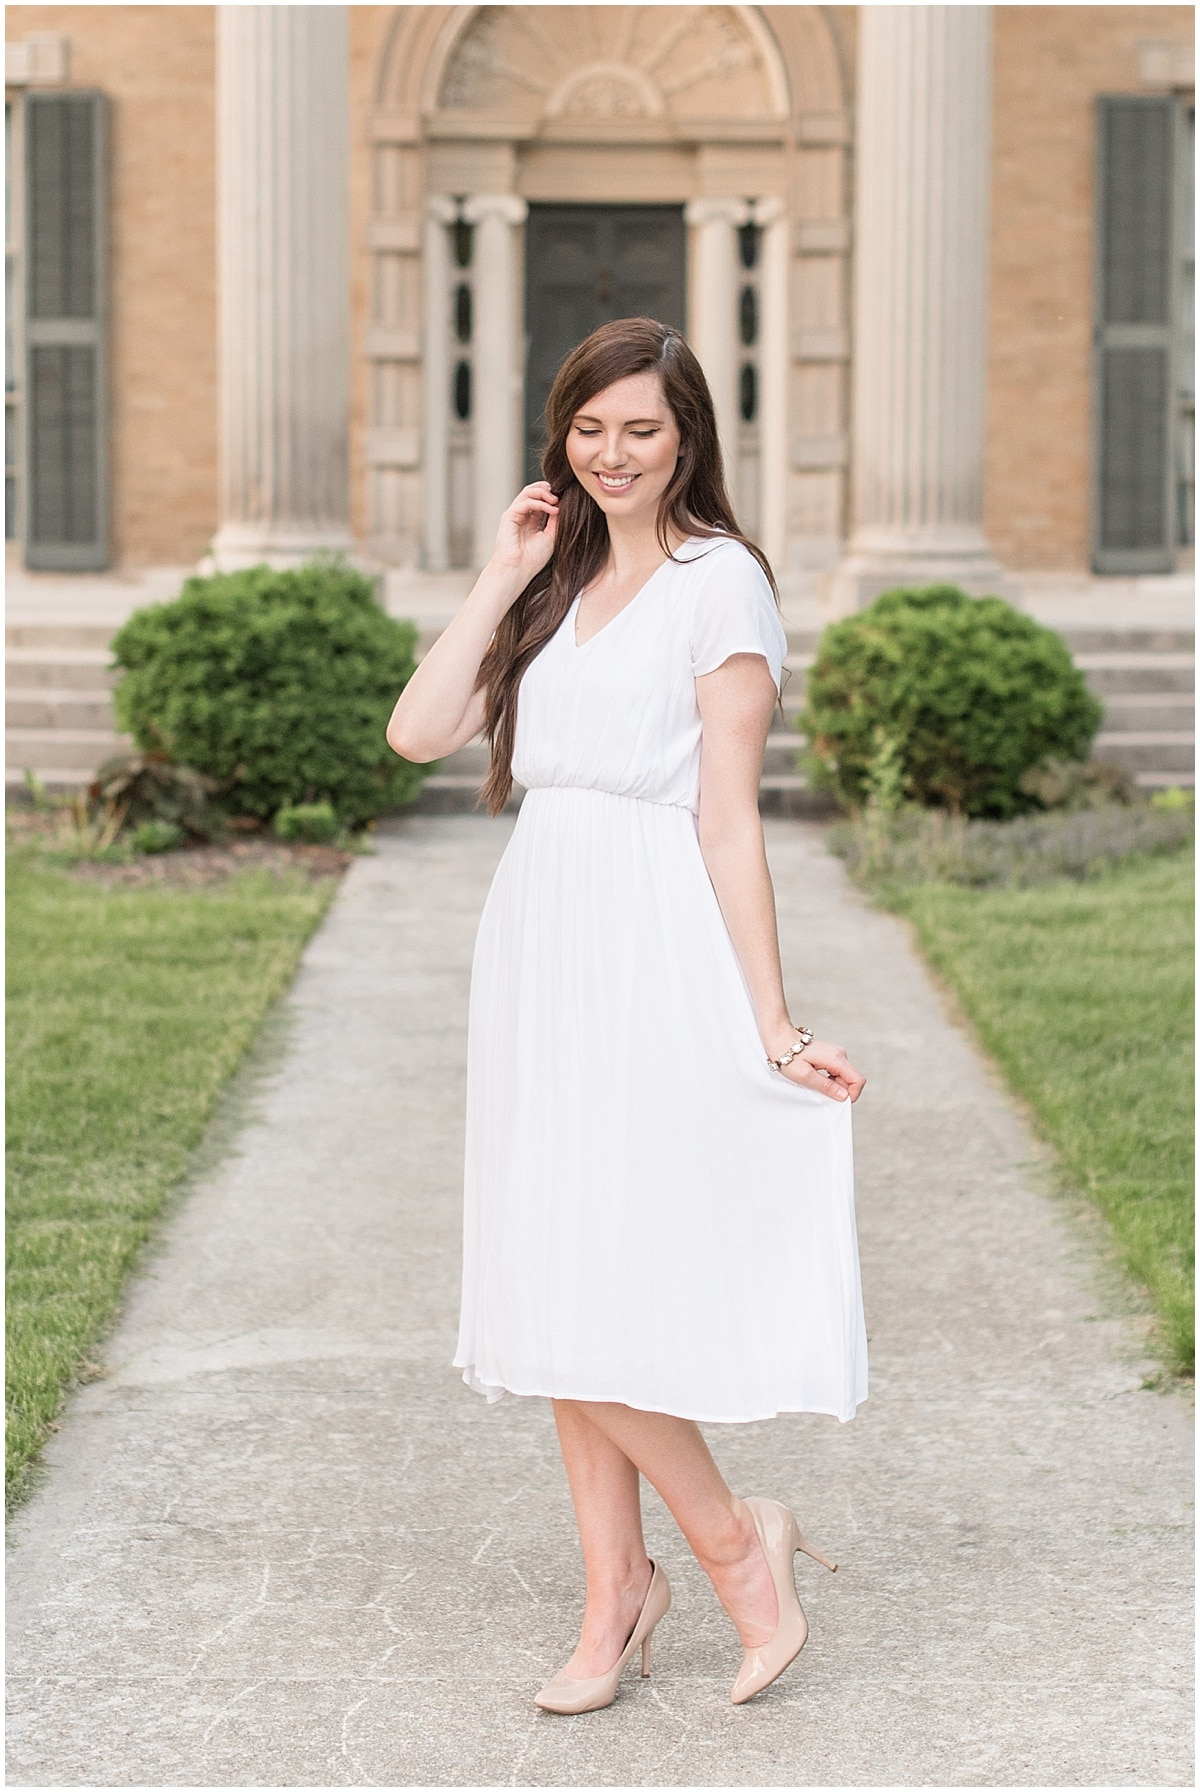 Wondering what to wear to your bridal shower? Flirty brides might try a flowy dress cinched at the waist.